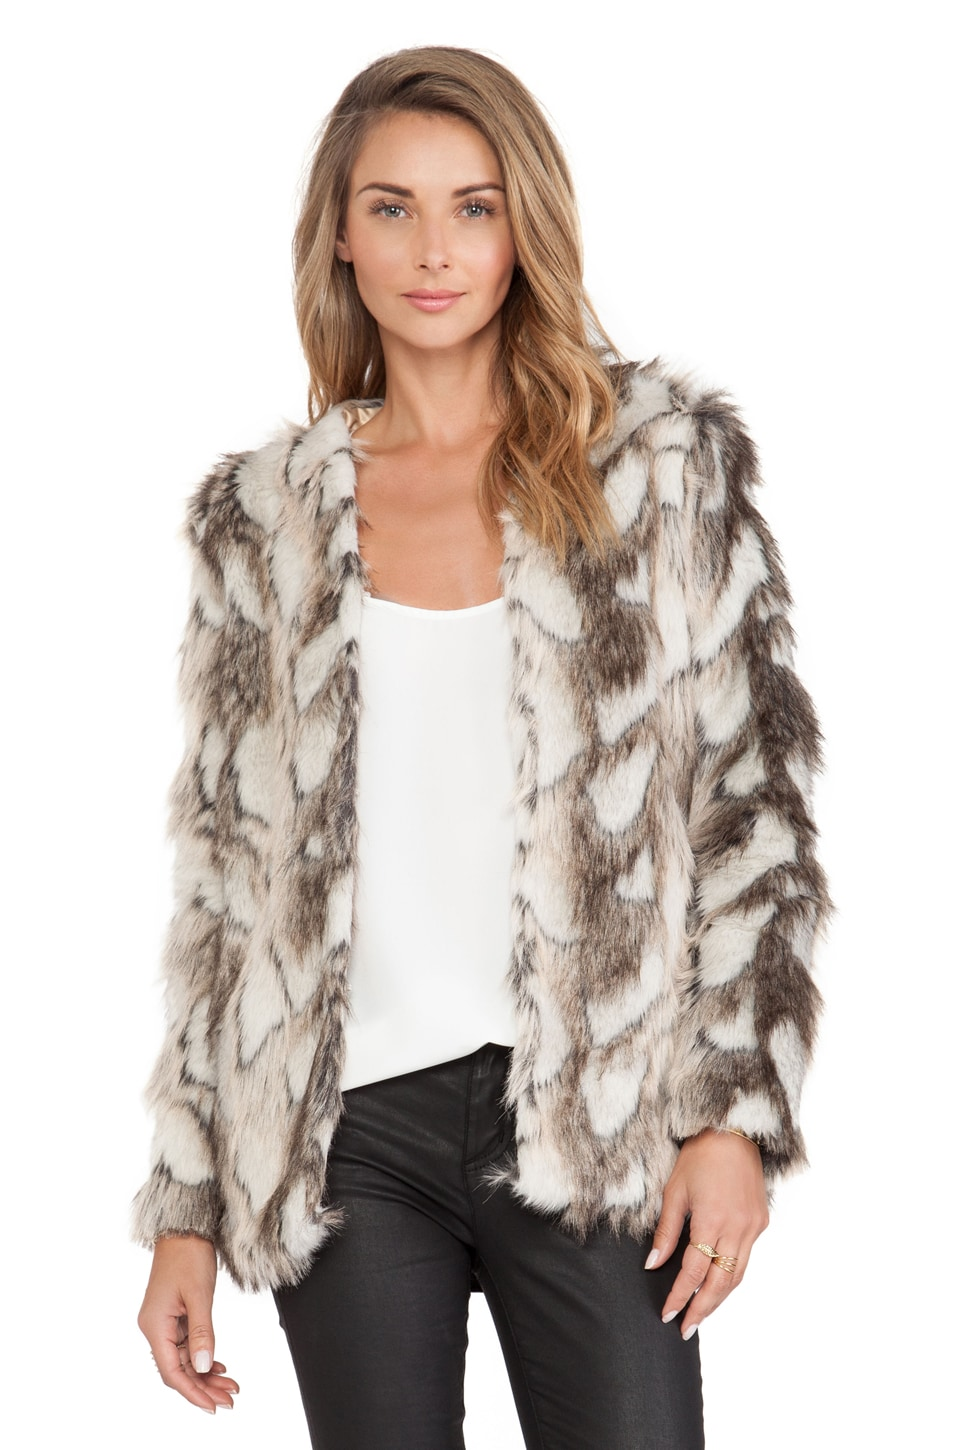 HEARTLOOM Tess Faux Fur Jacket in Fawn